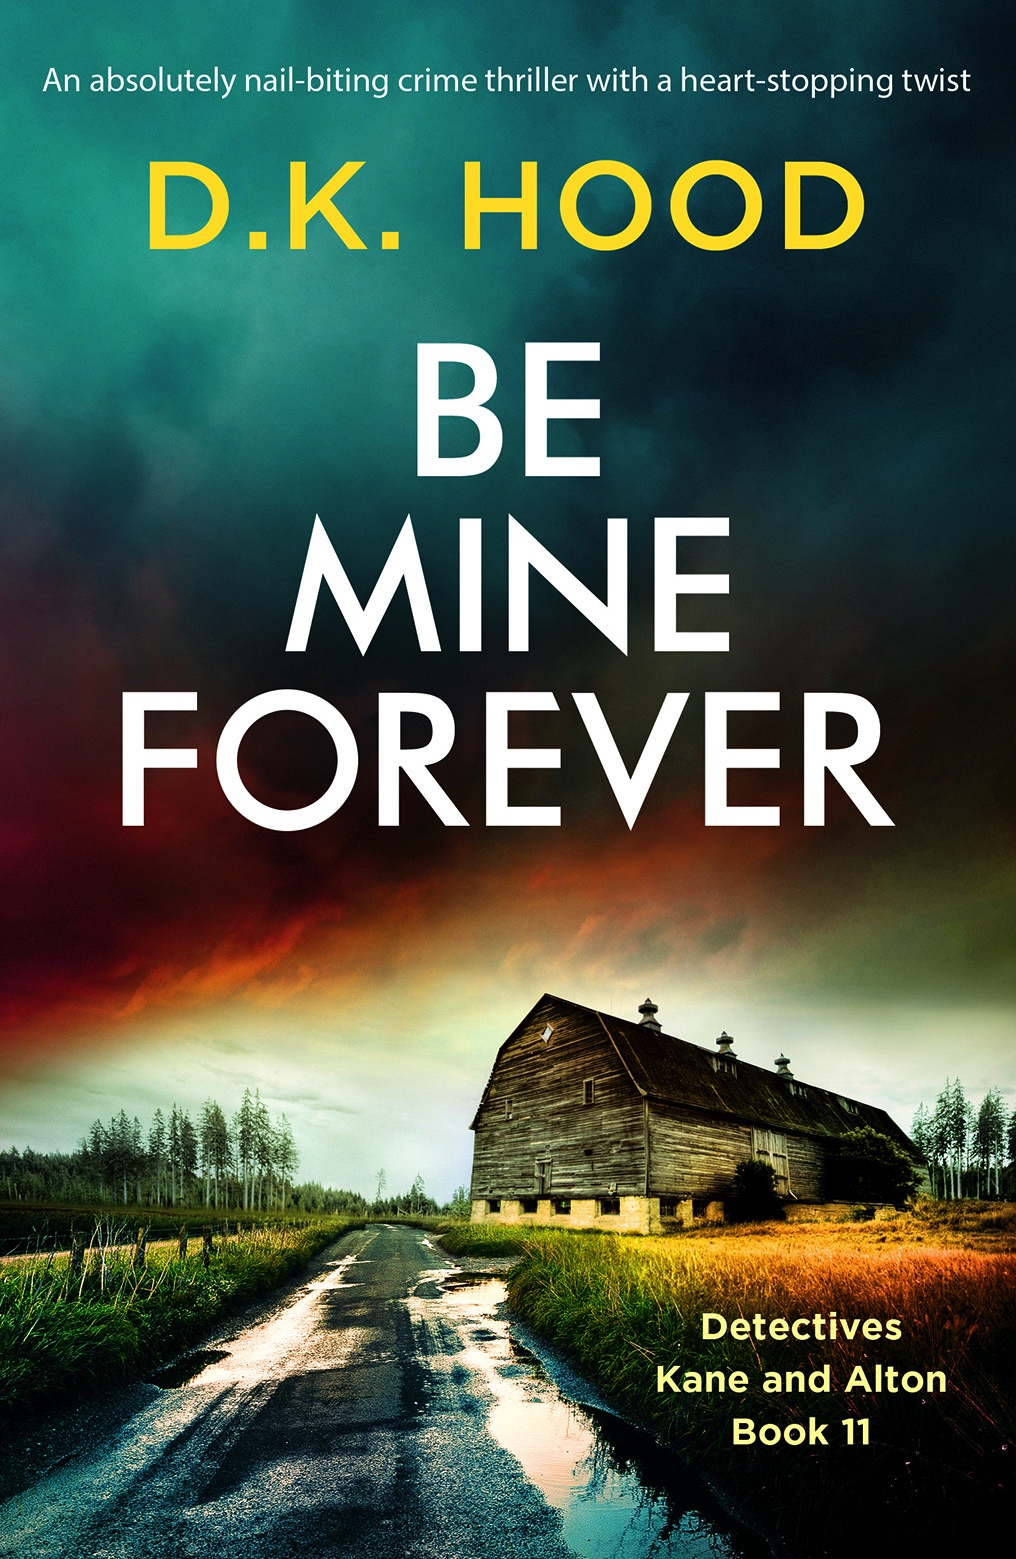 Be Mine Forever by D.K Hood #BookReview #BooksOnTour #NetGalleyCountdown #Book #KaneAndAlton